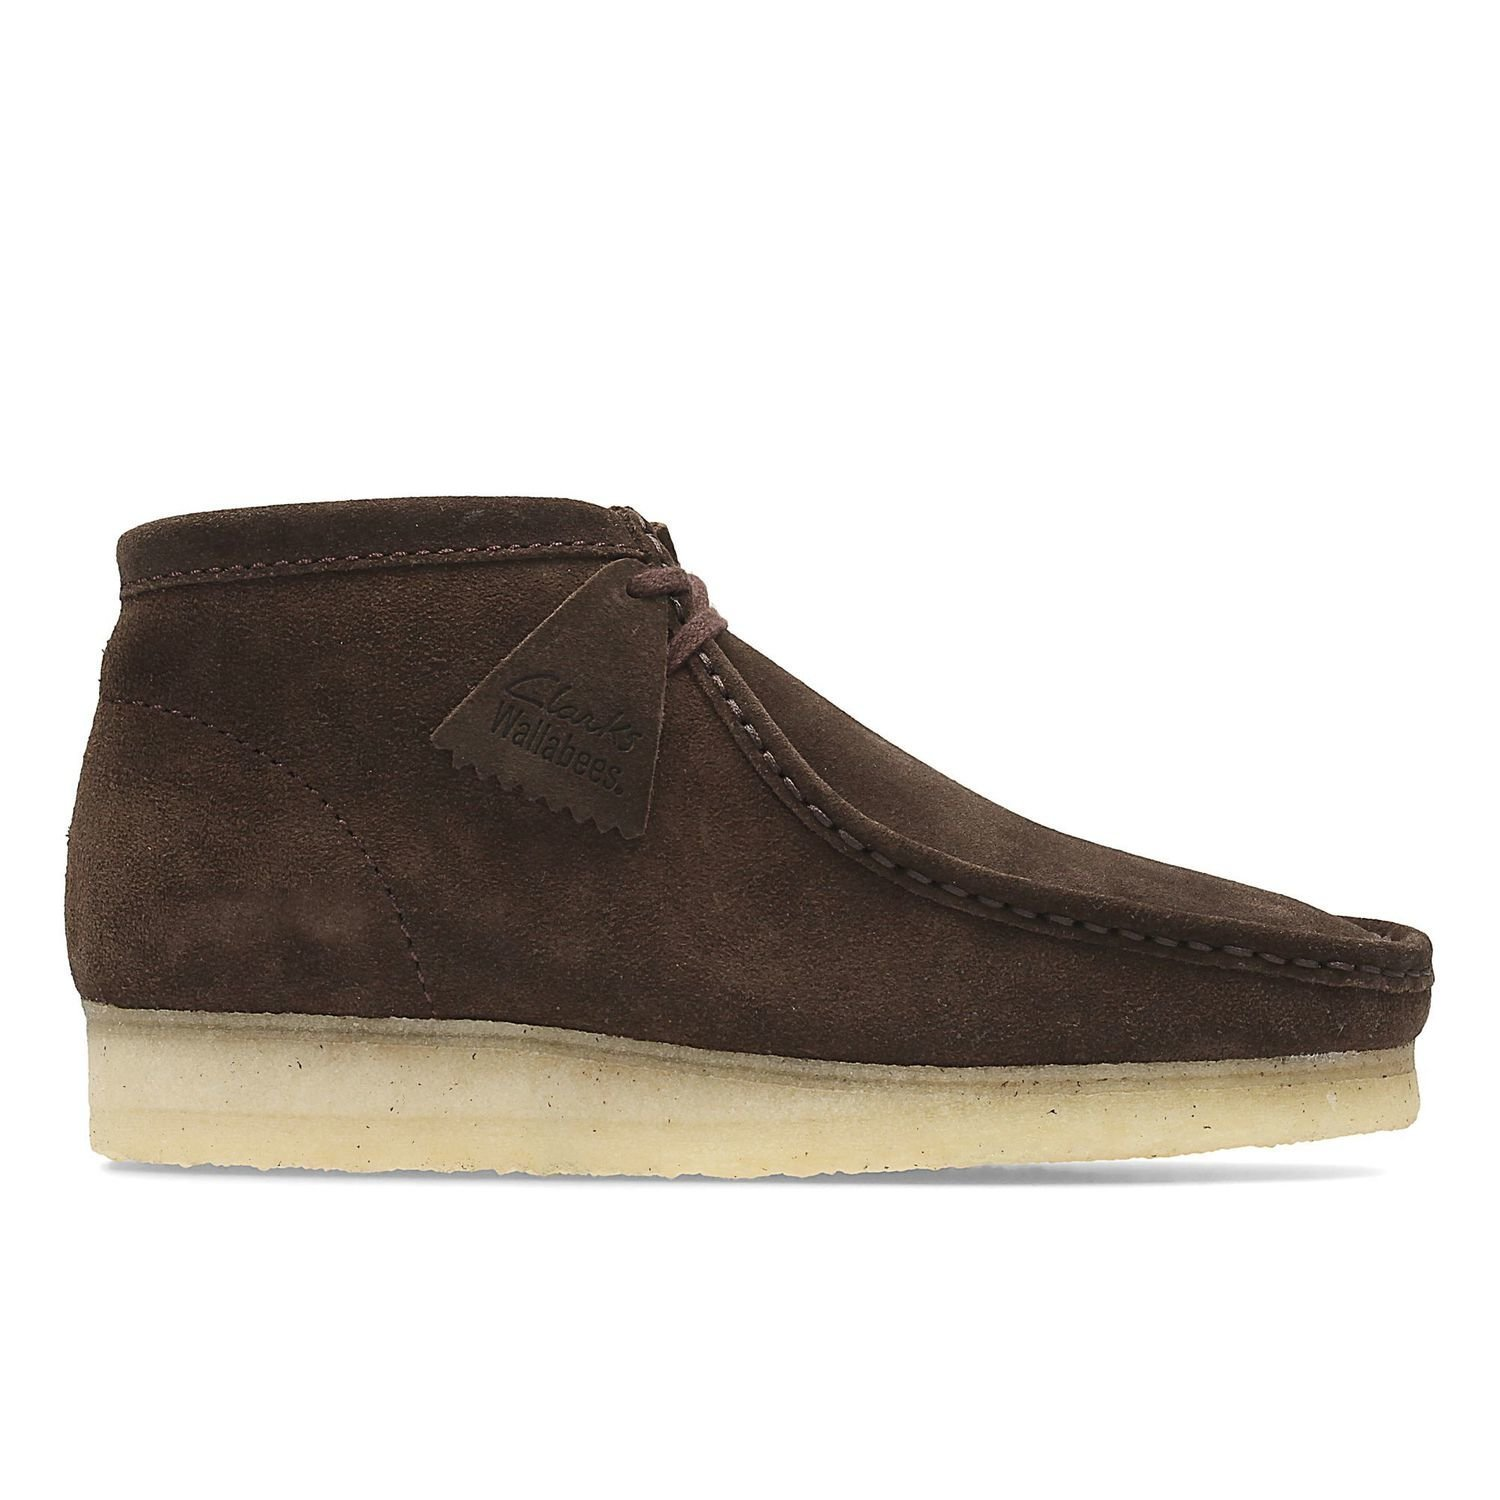 Botas Wallabee Boot Ante Marron Oscuro TN-2380236